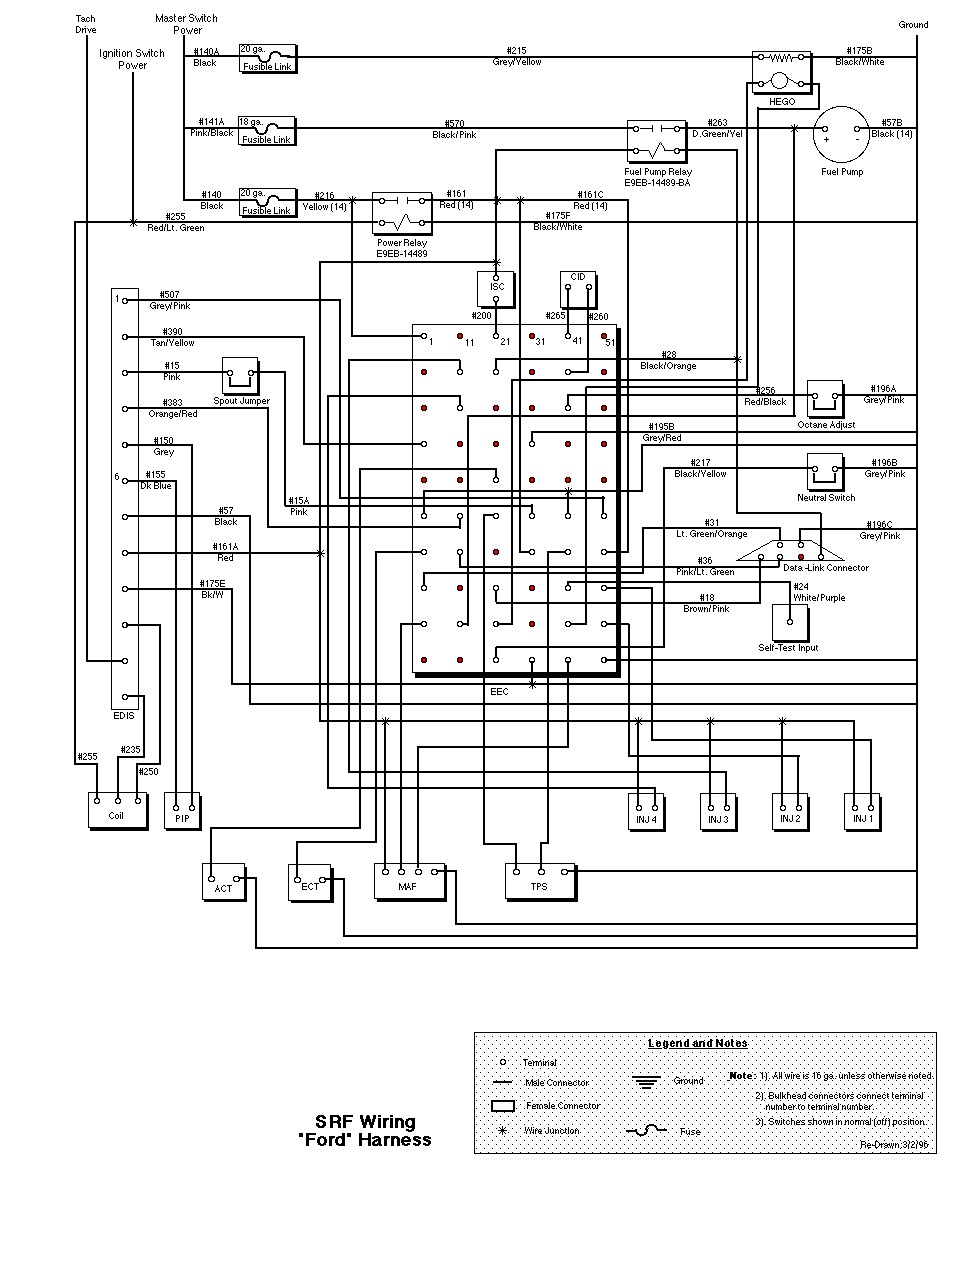 Ford L9000 Wiring Schematic Manual : 34 Wiring Diagram